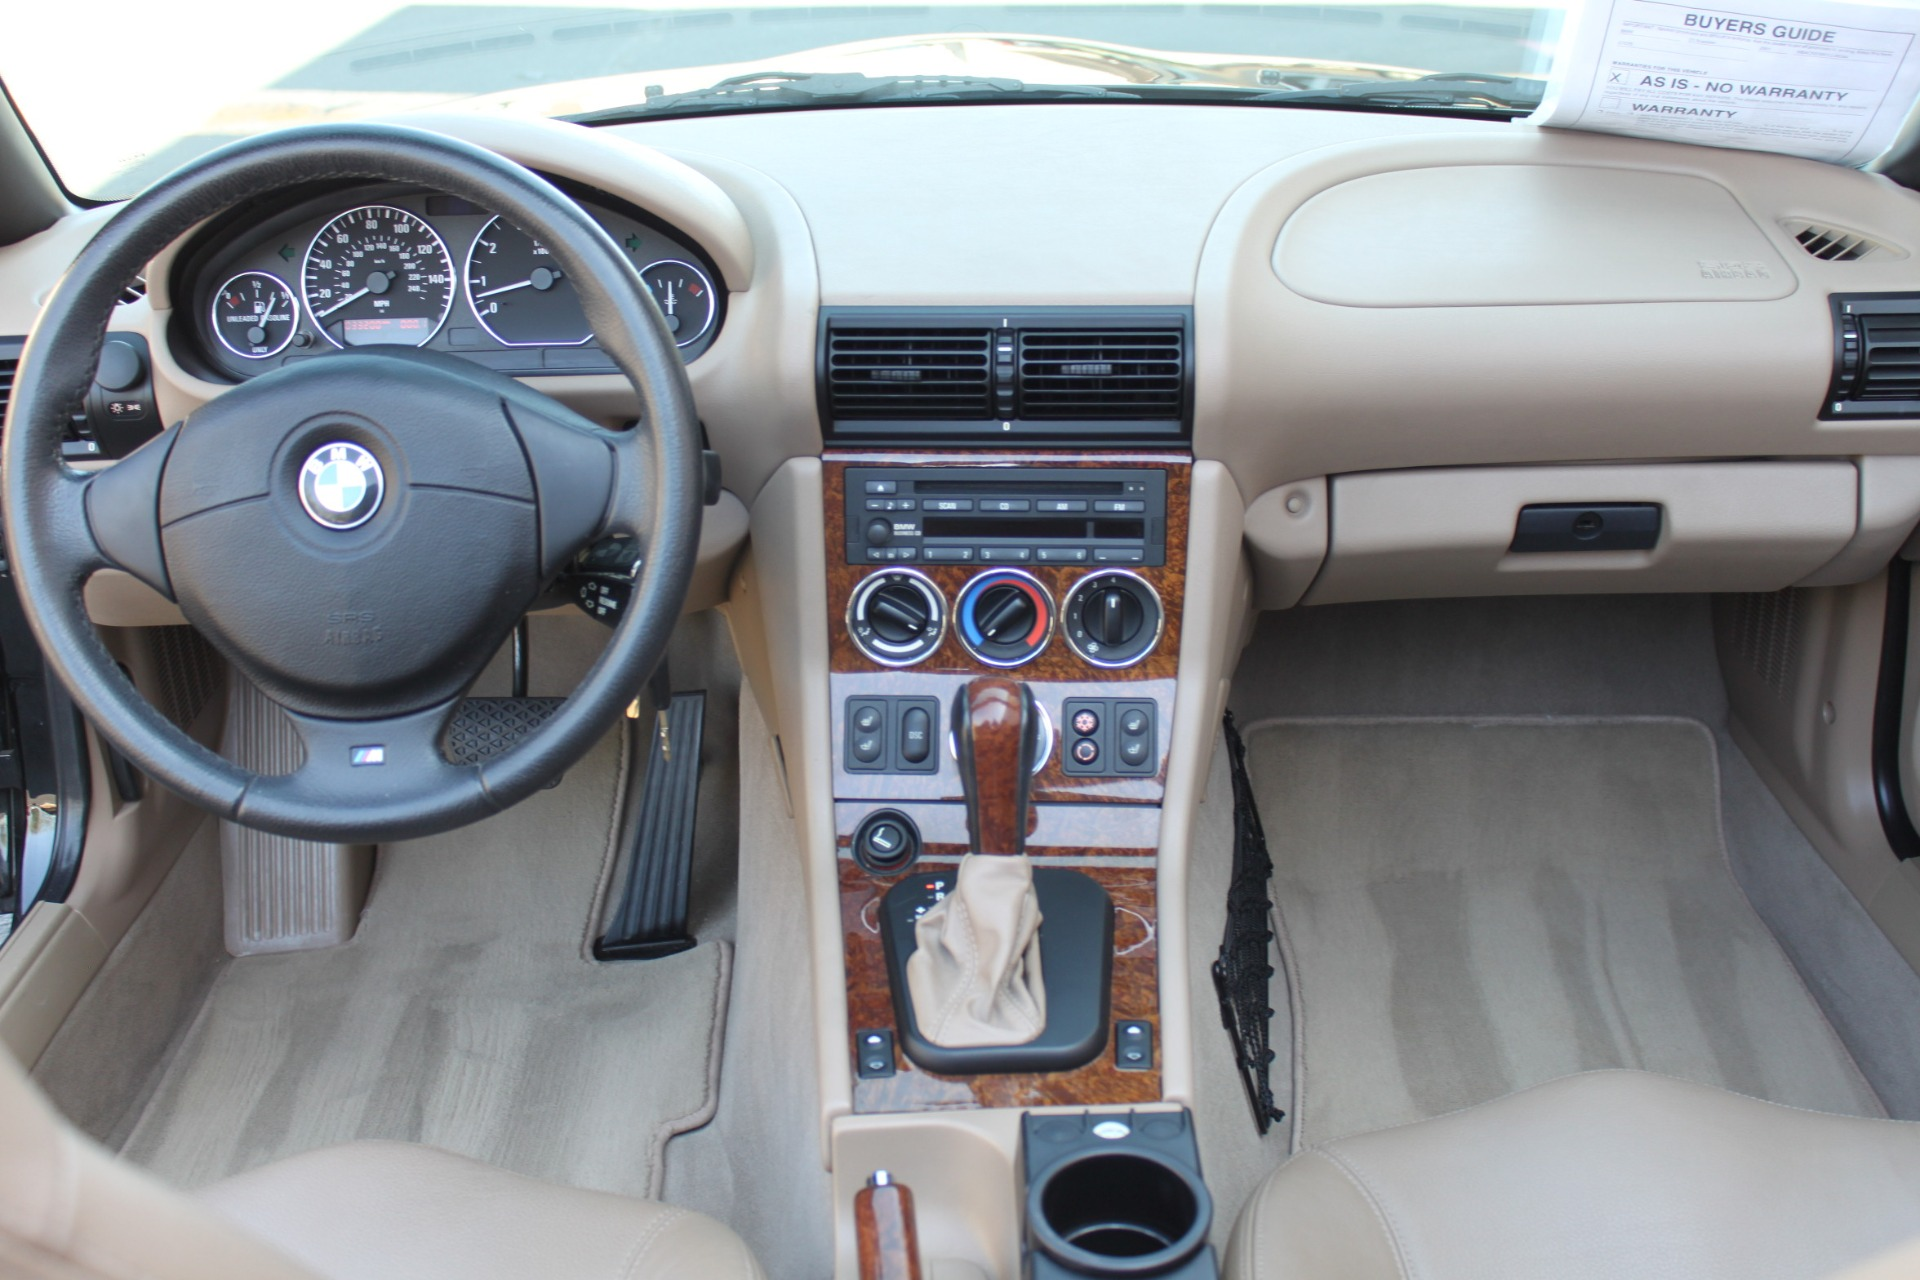 Used-2001-BMW-Z3-Roadster-30i-Luxury-Cars-Lake-County